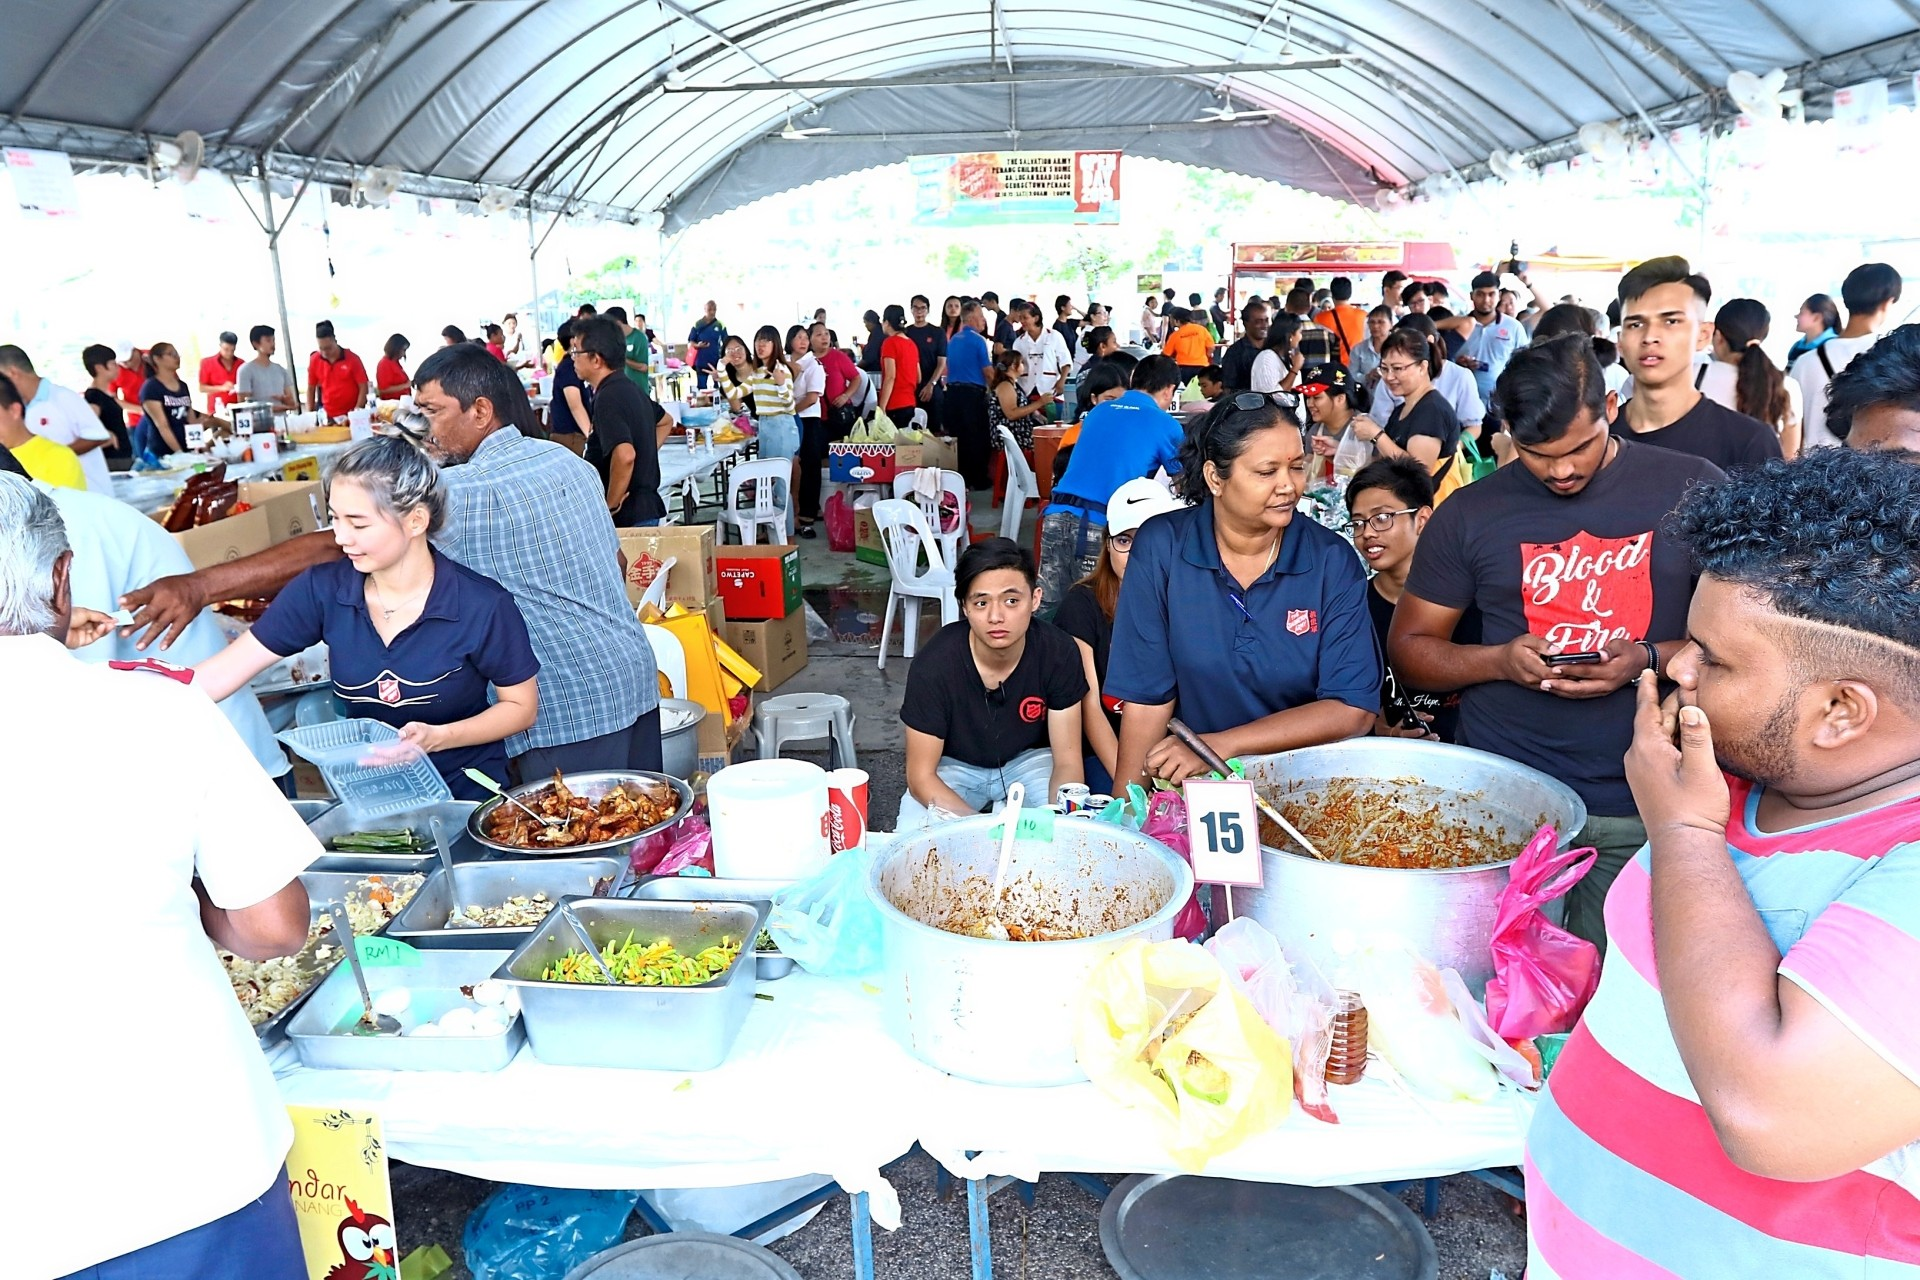 Visitors patronising the food stalls during the Salvation Army's annual open day and charity food fair. — Photos: ZAINUDIN AHAD/The Star